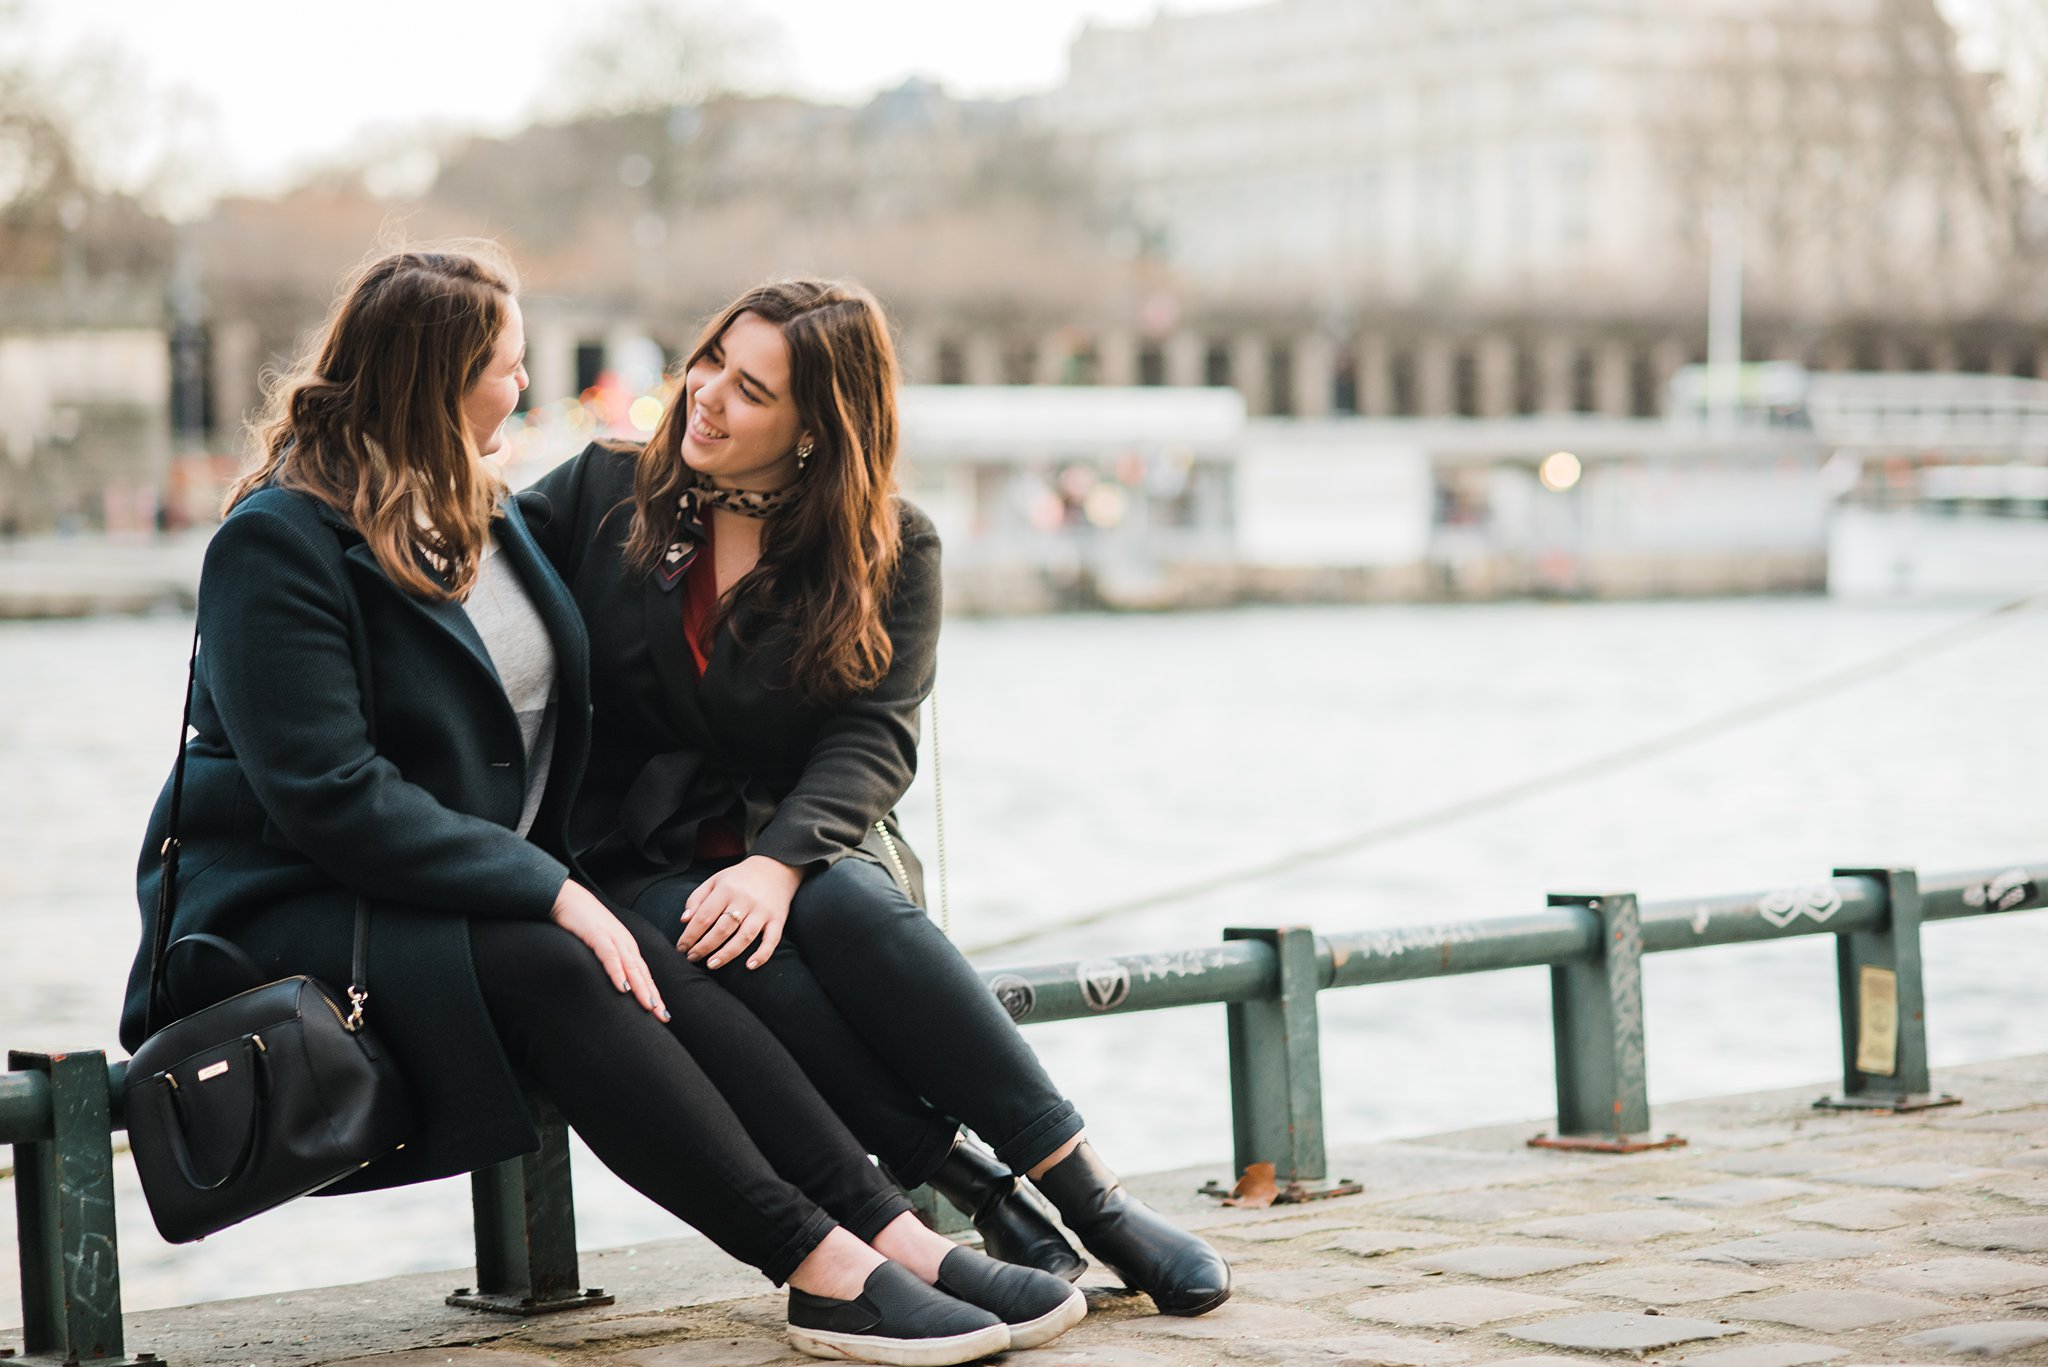 sisters by the seine river in paris france